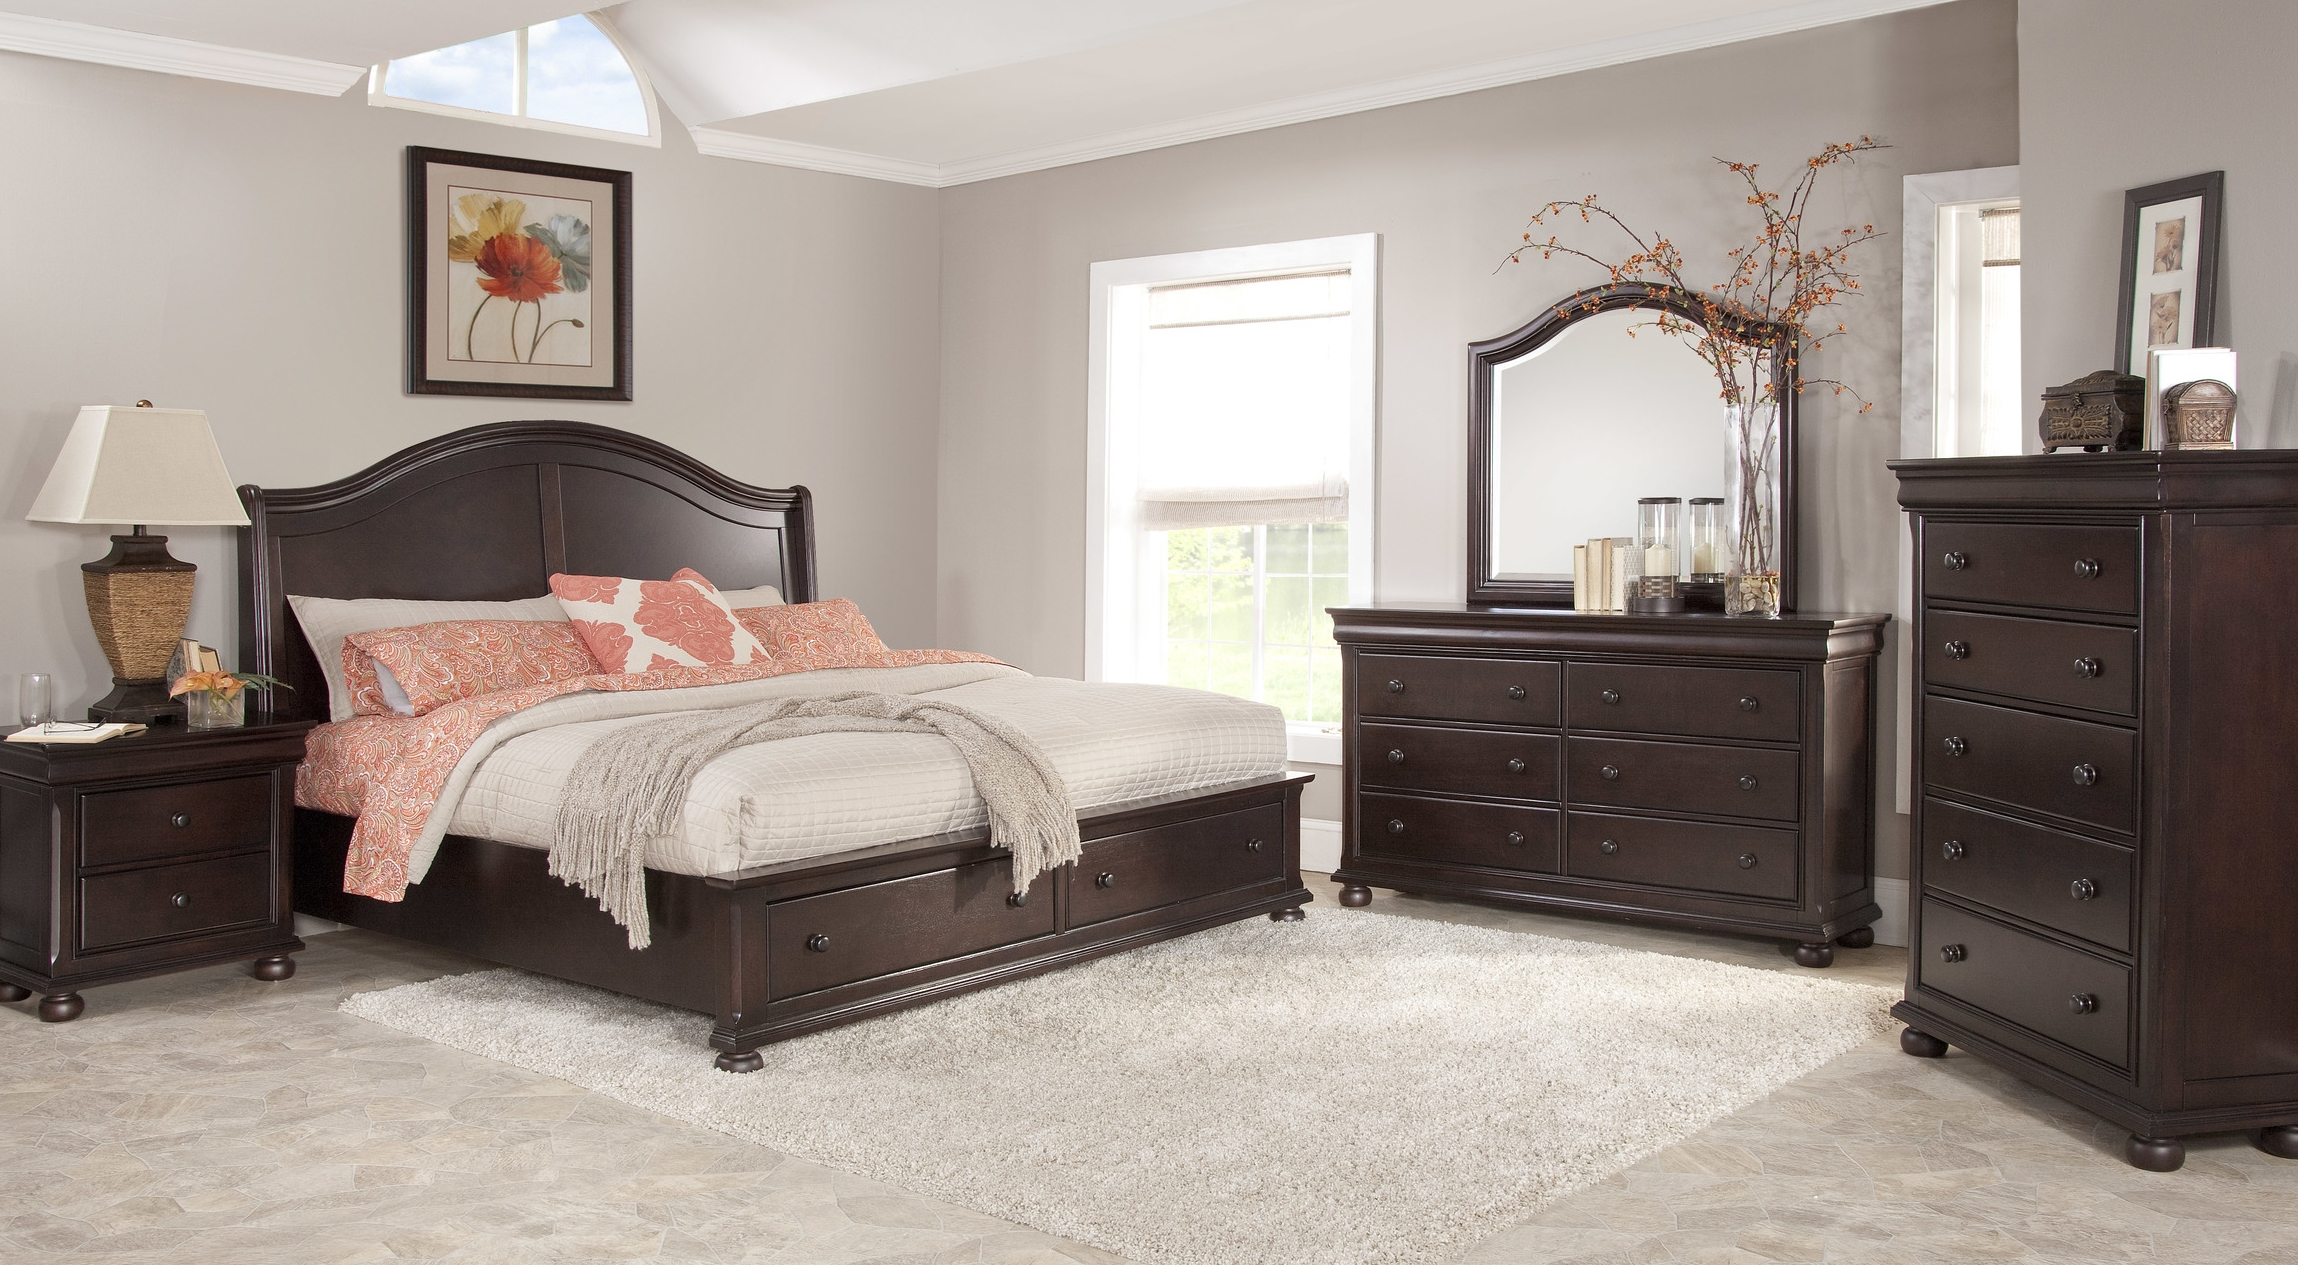 HYDE PARK - 1310   seal brown finish